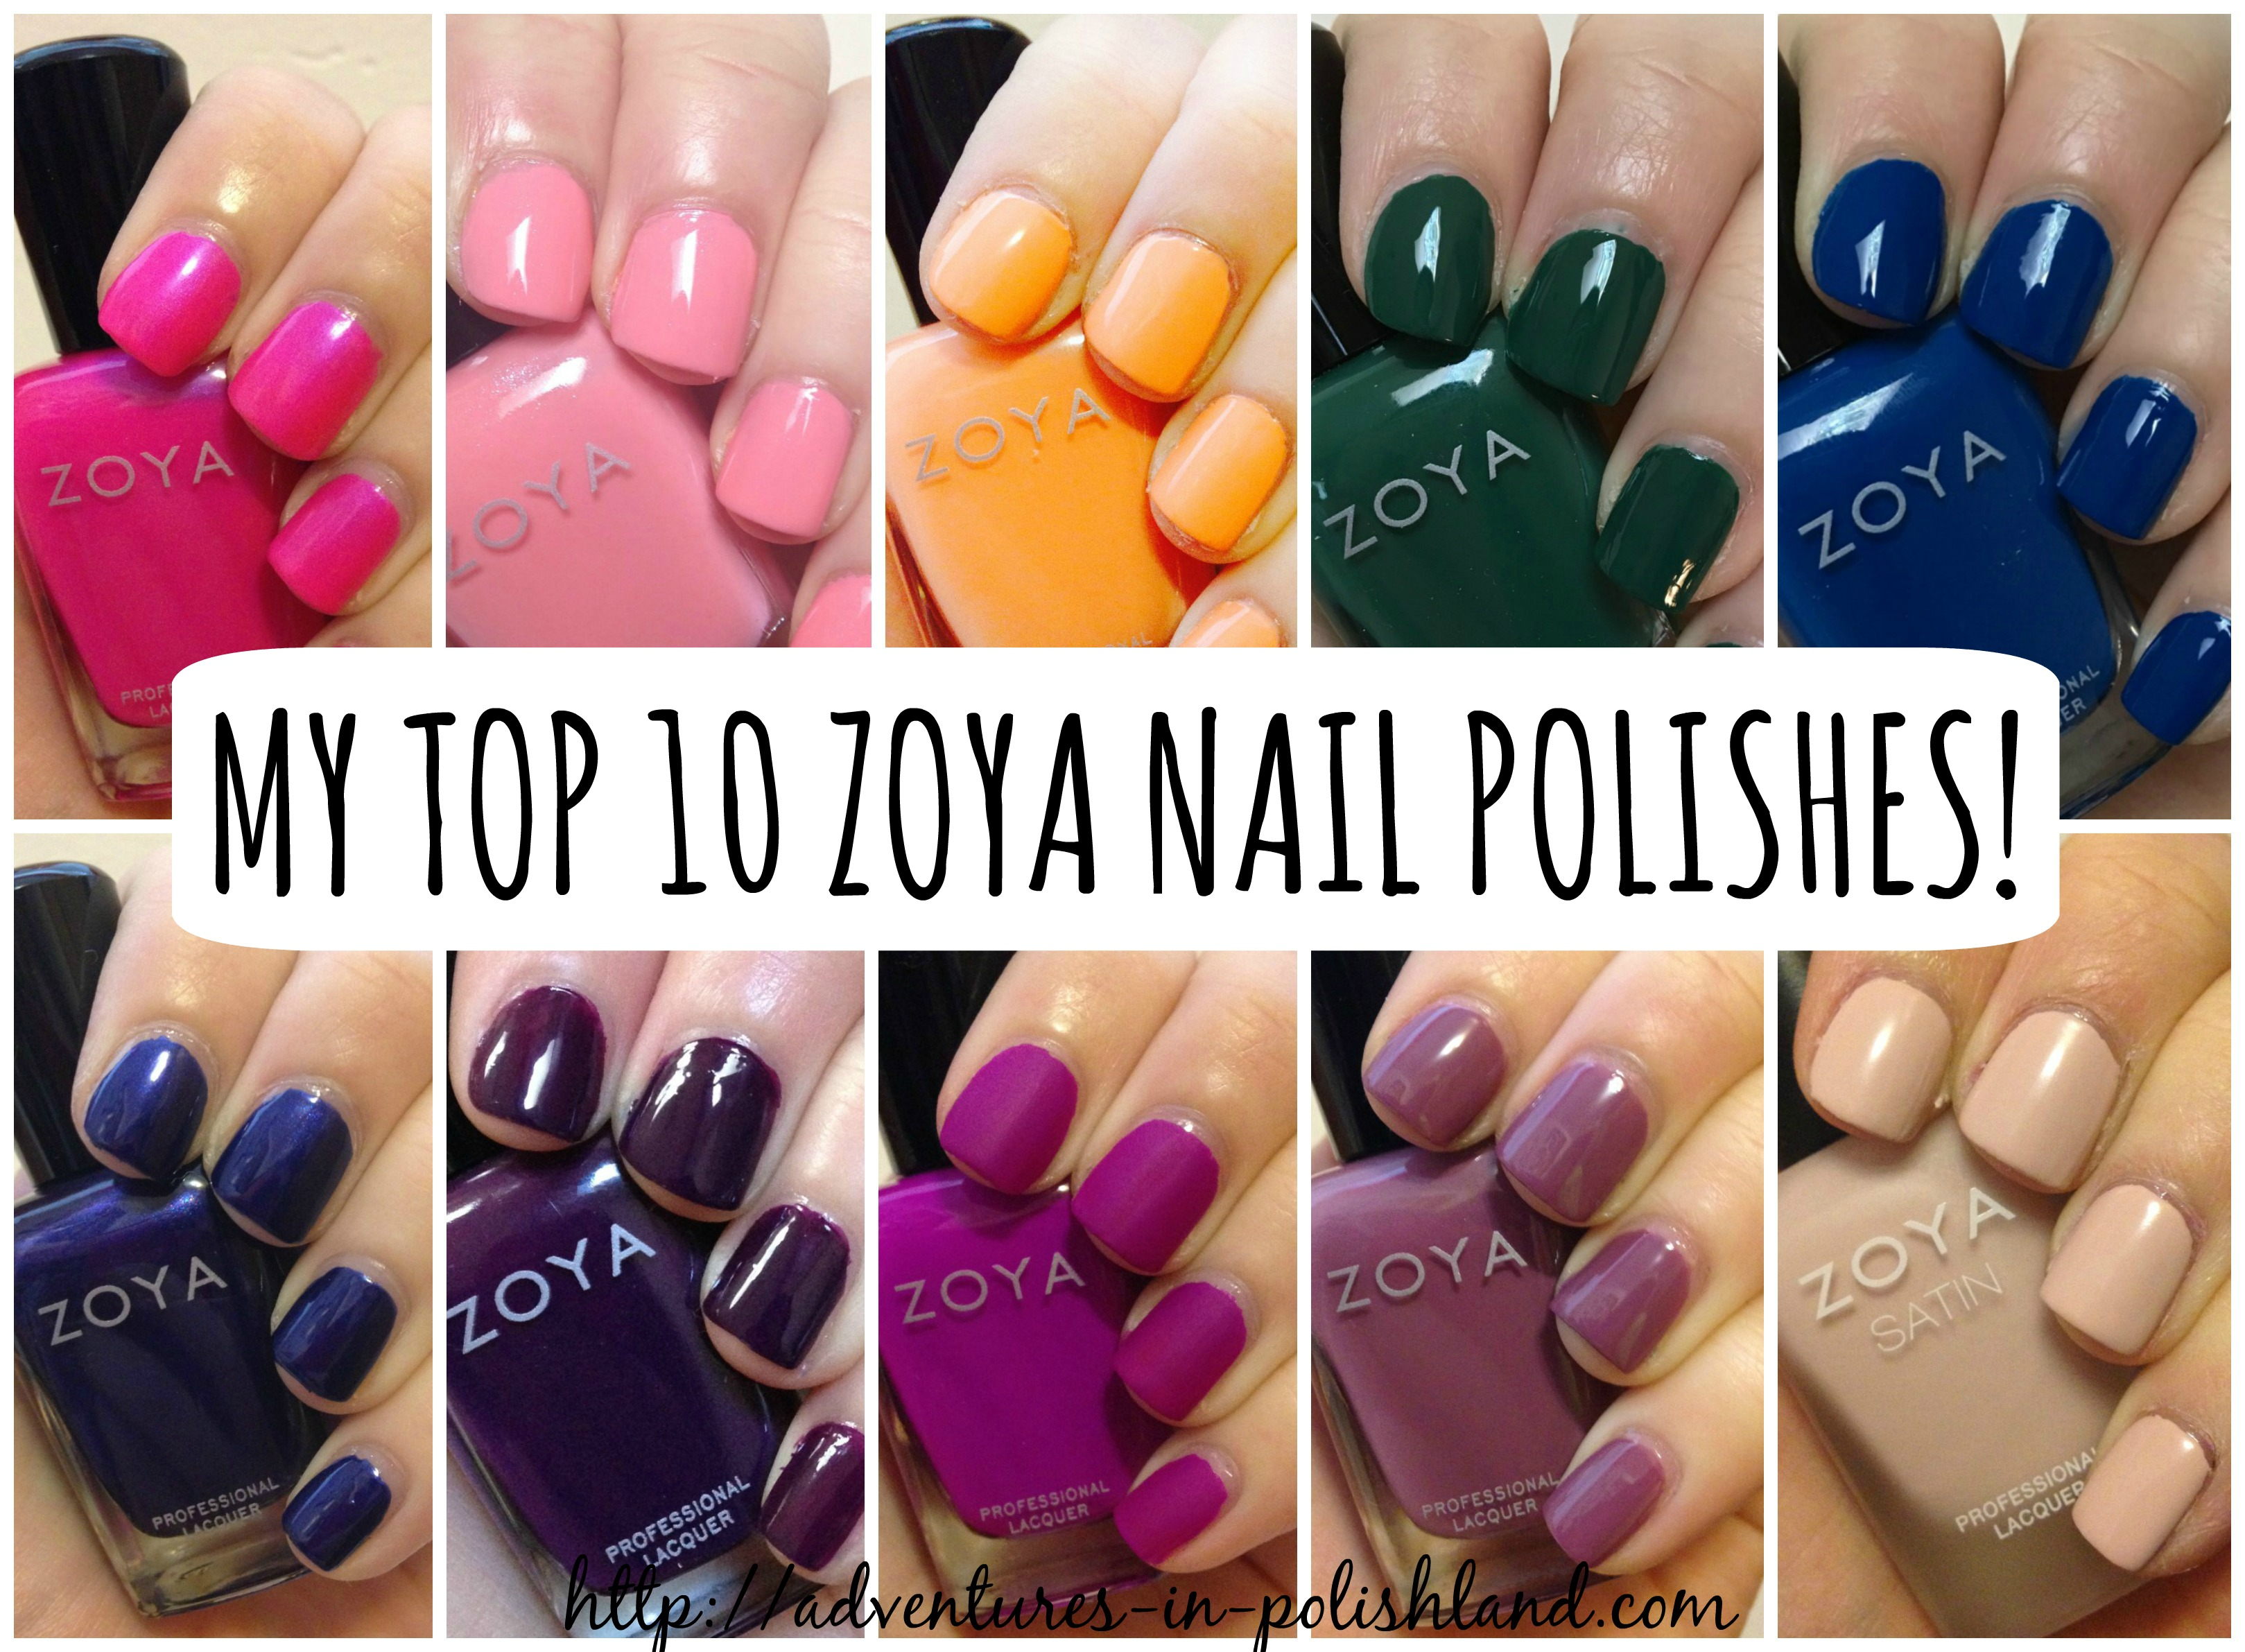 Zoya Nail Polish 70% Off Black Friday Sale | My Top 10 Zoya Nail ...